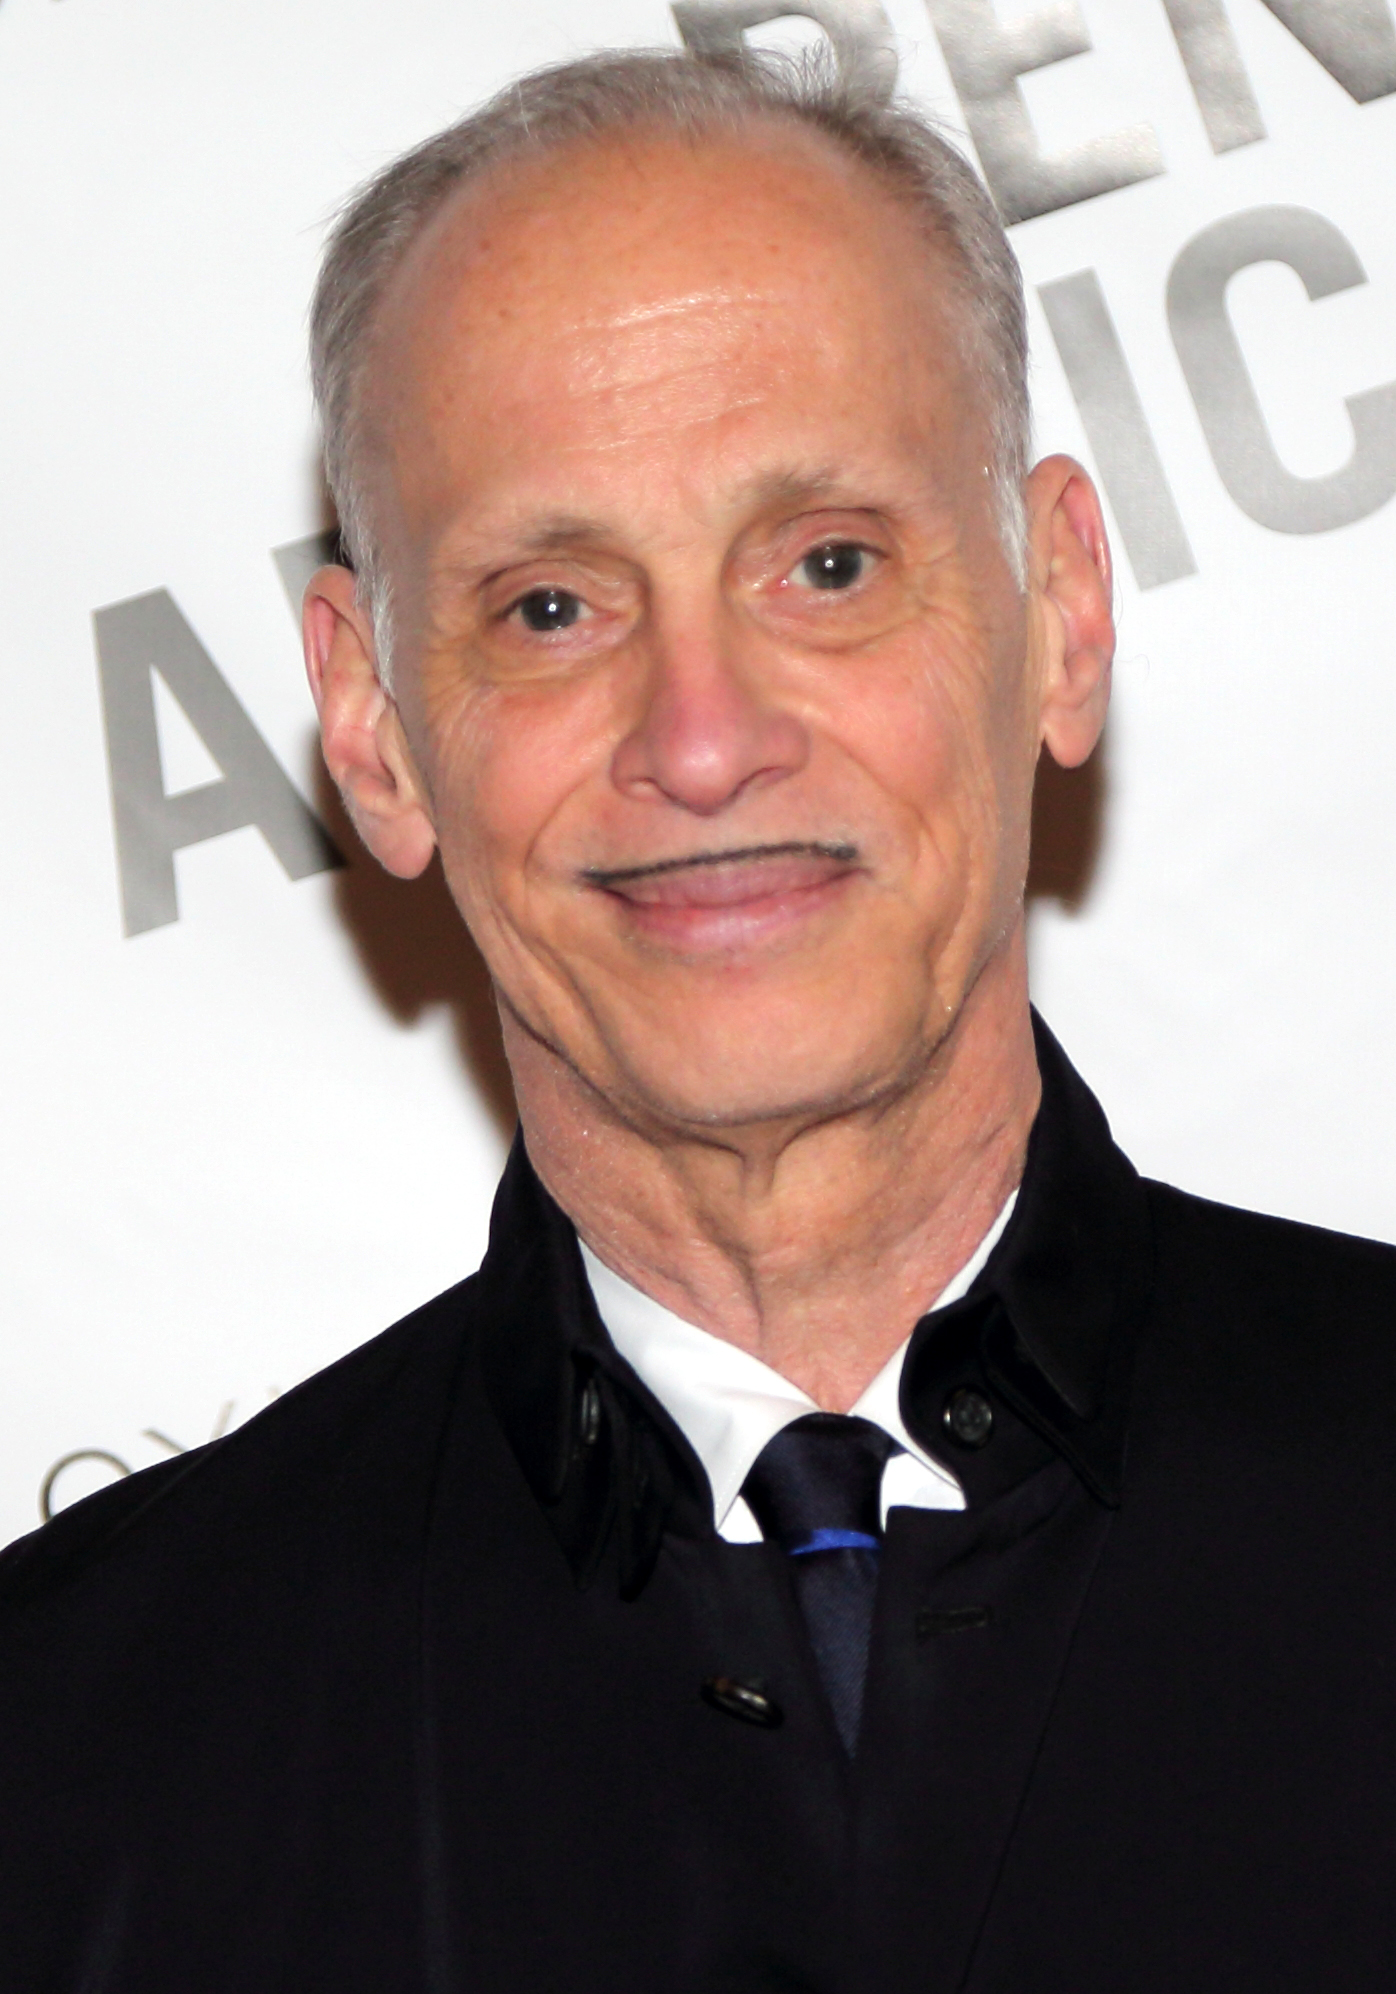 John Waters - Wikipedia